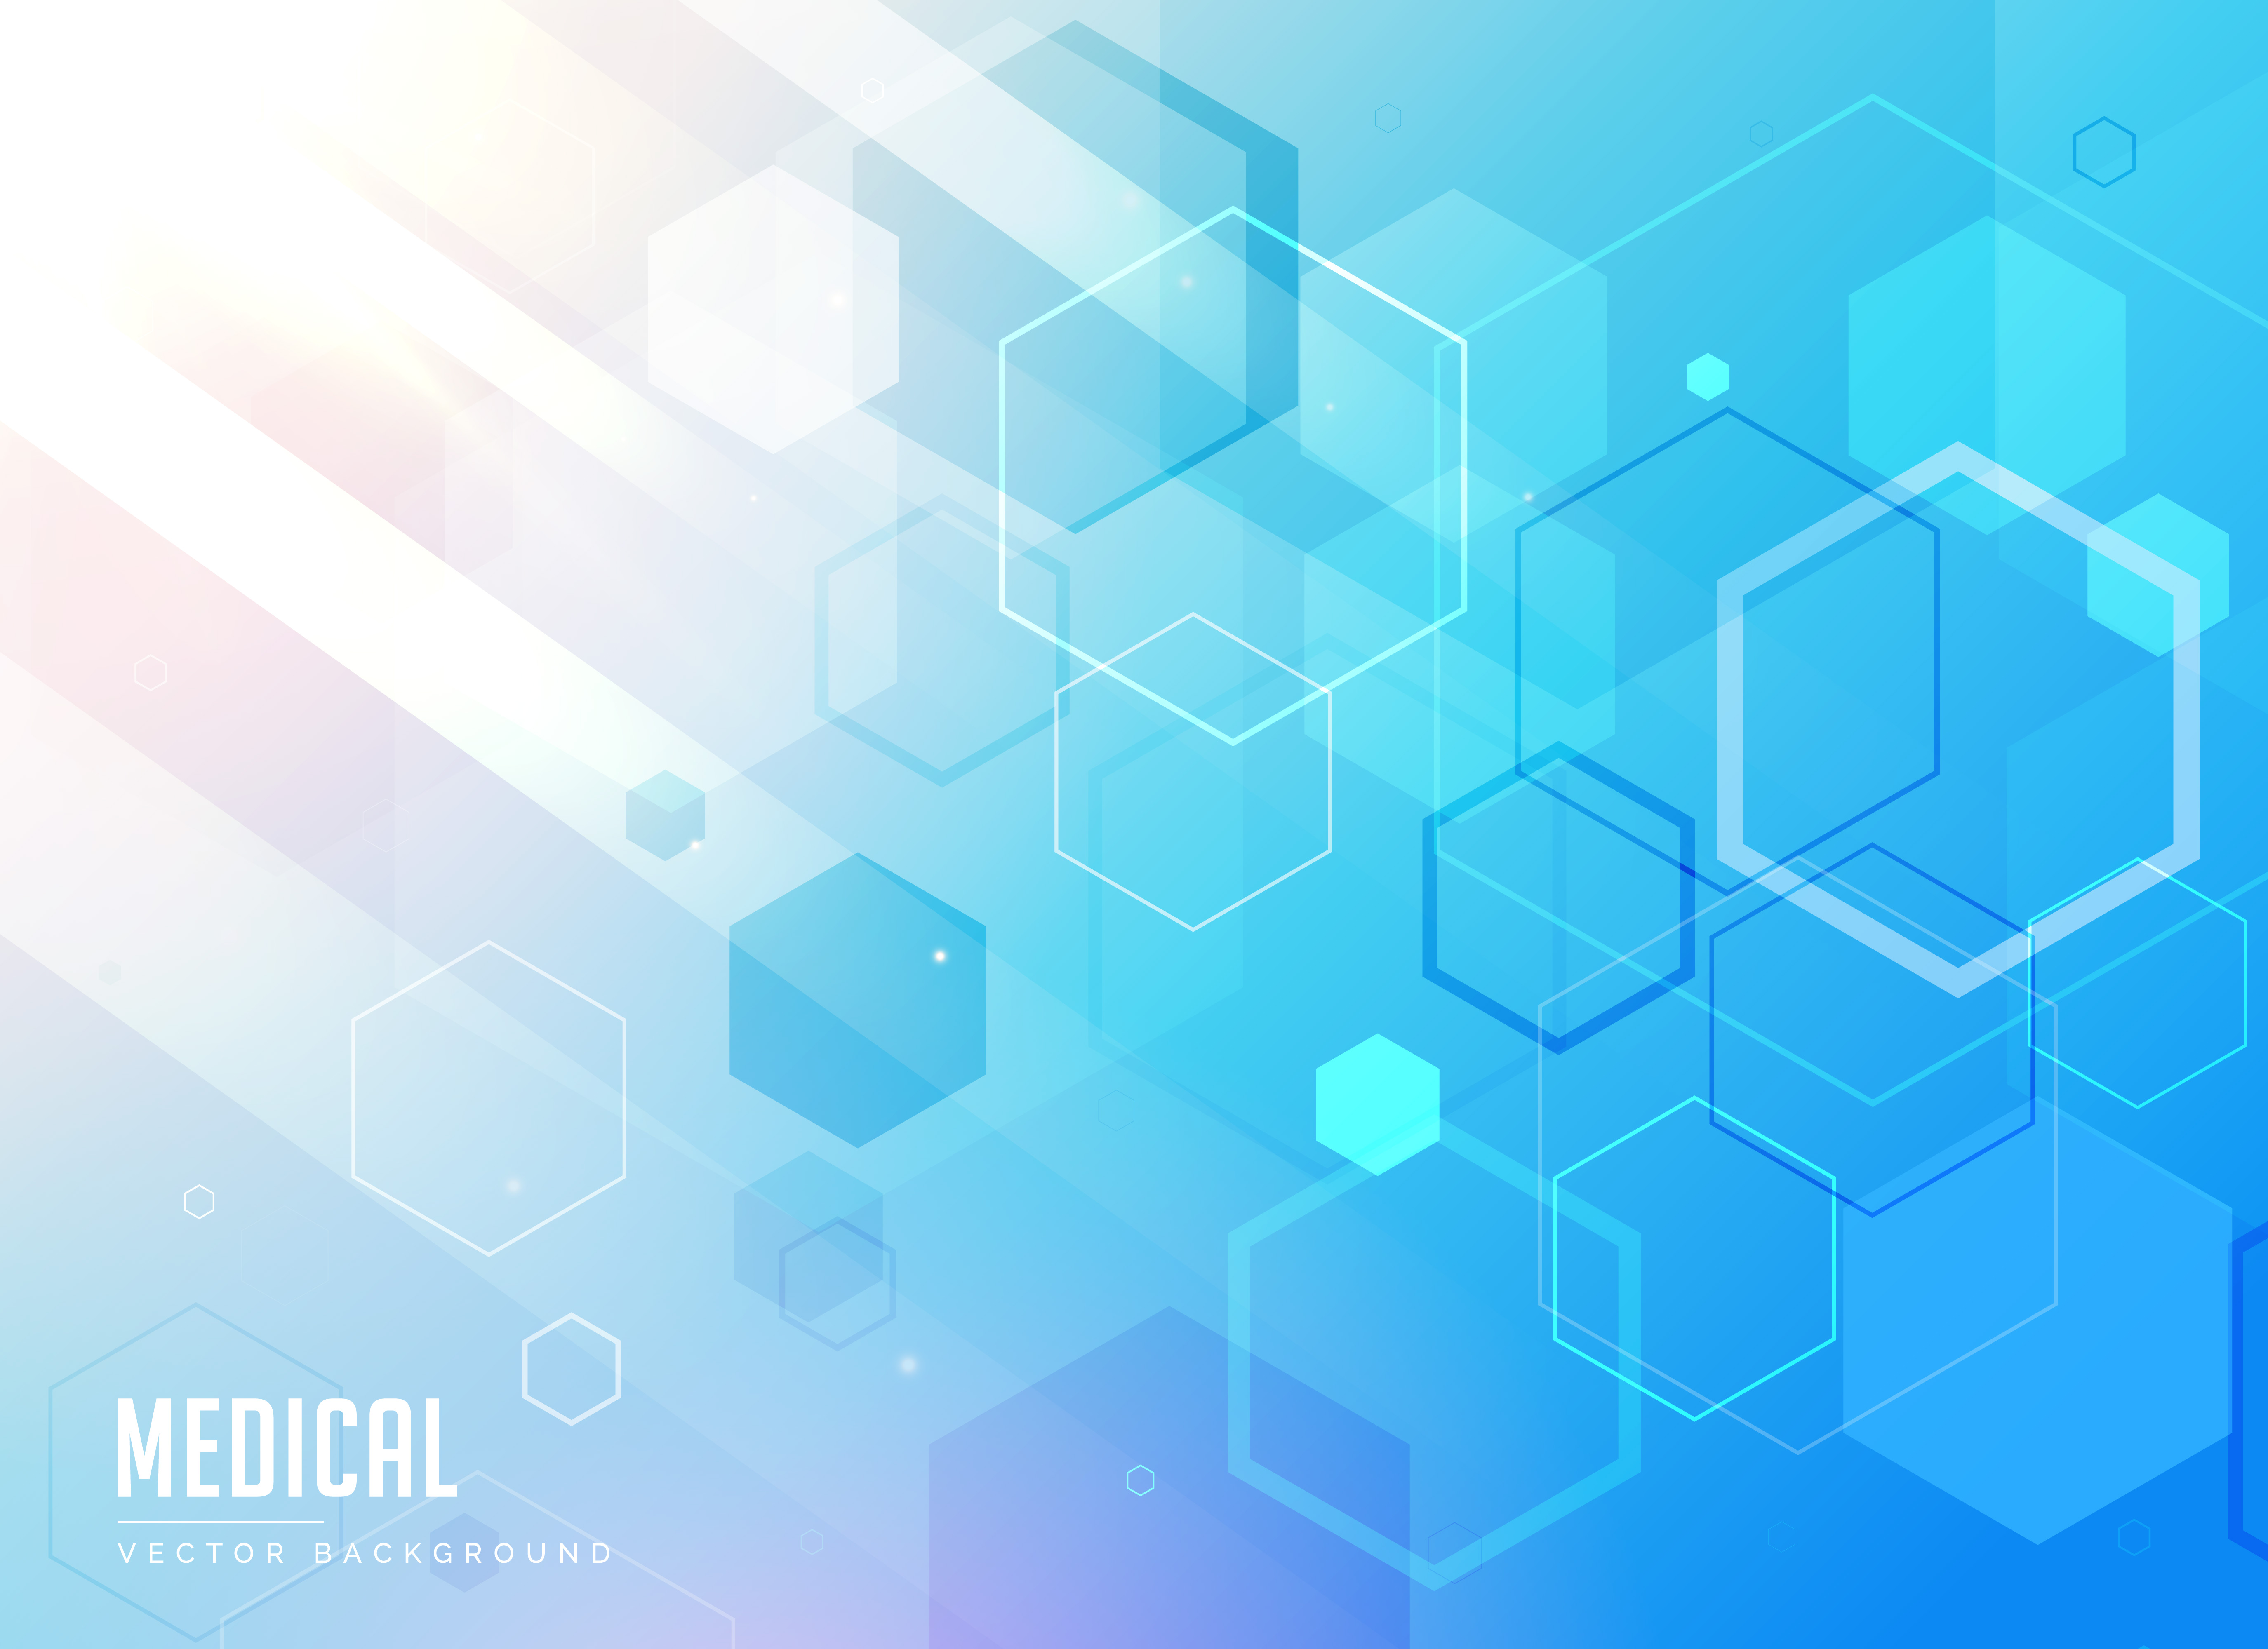 vector-medical-care-blue-background-with-hexagonal-geometric-shapes.jpg